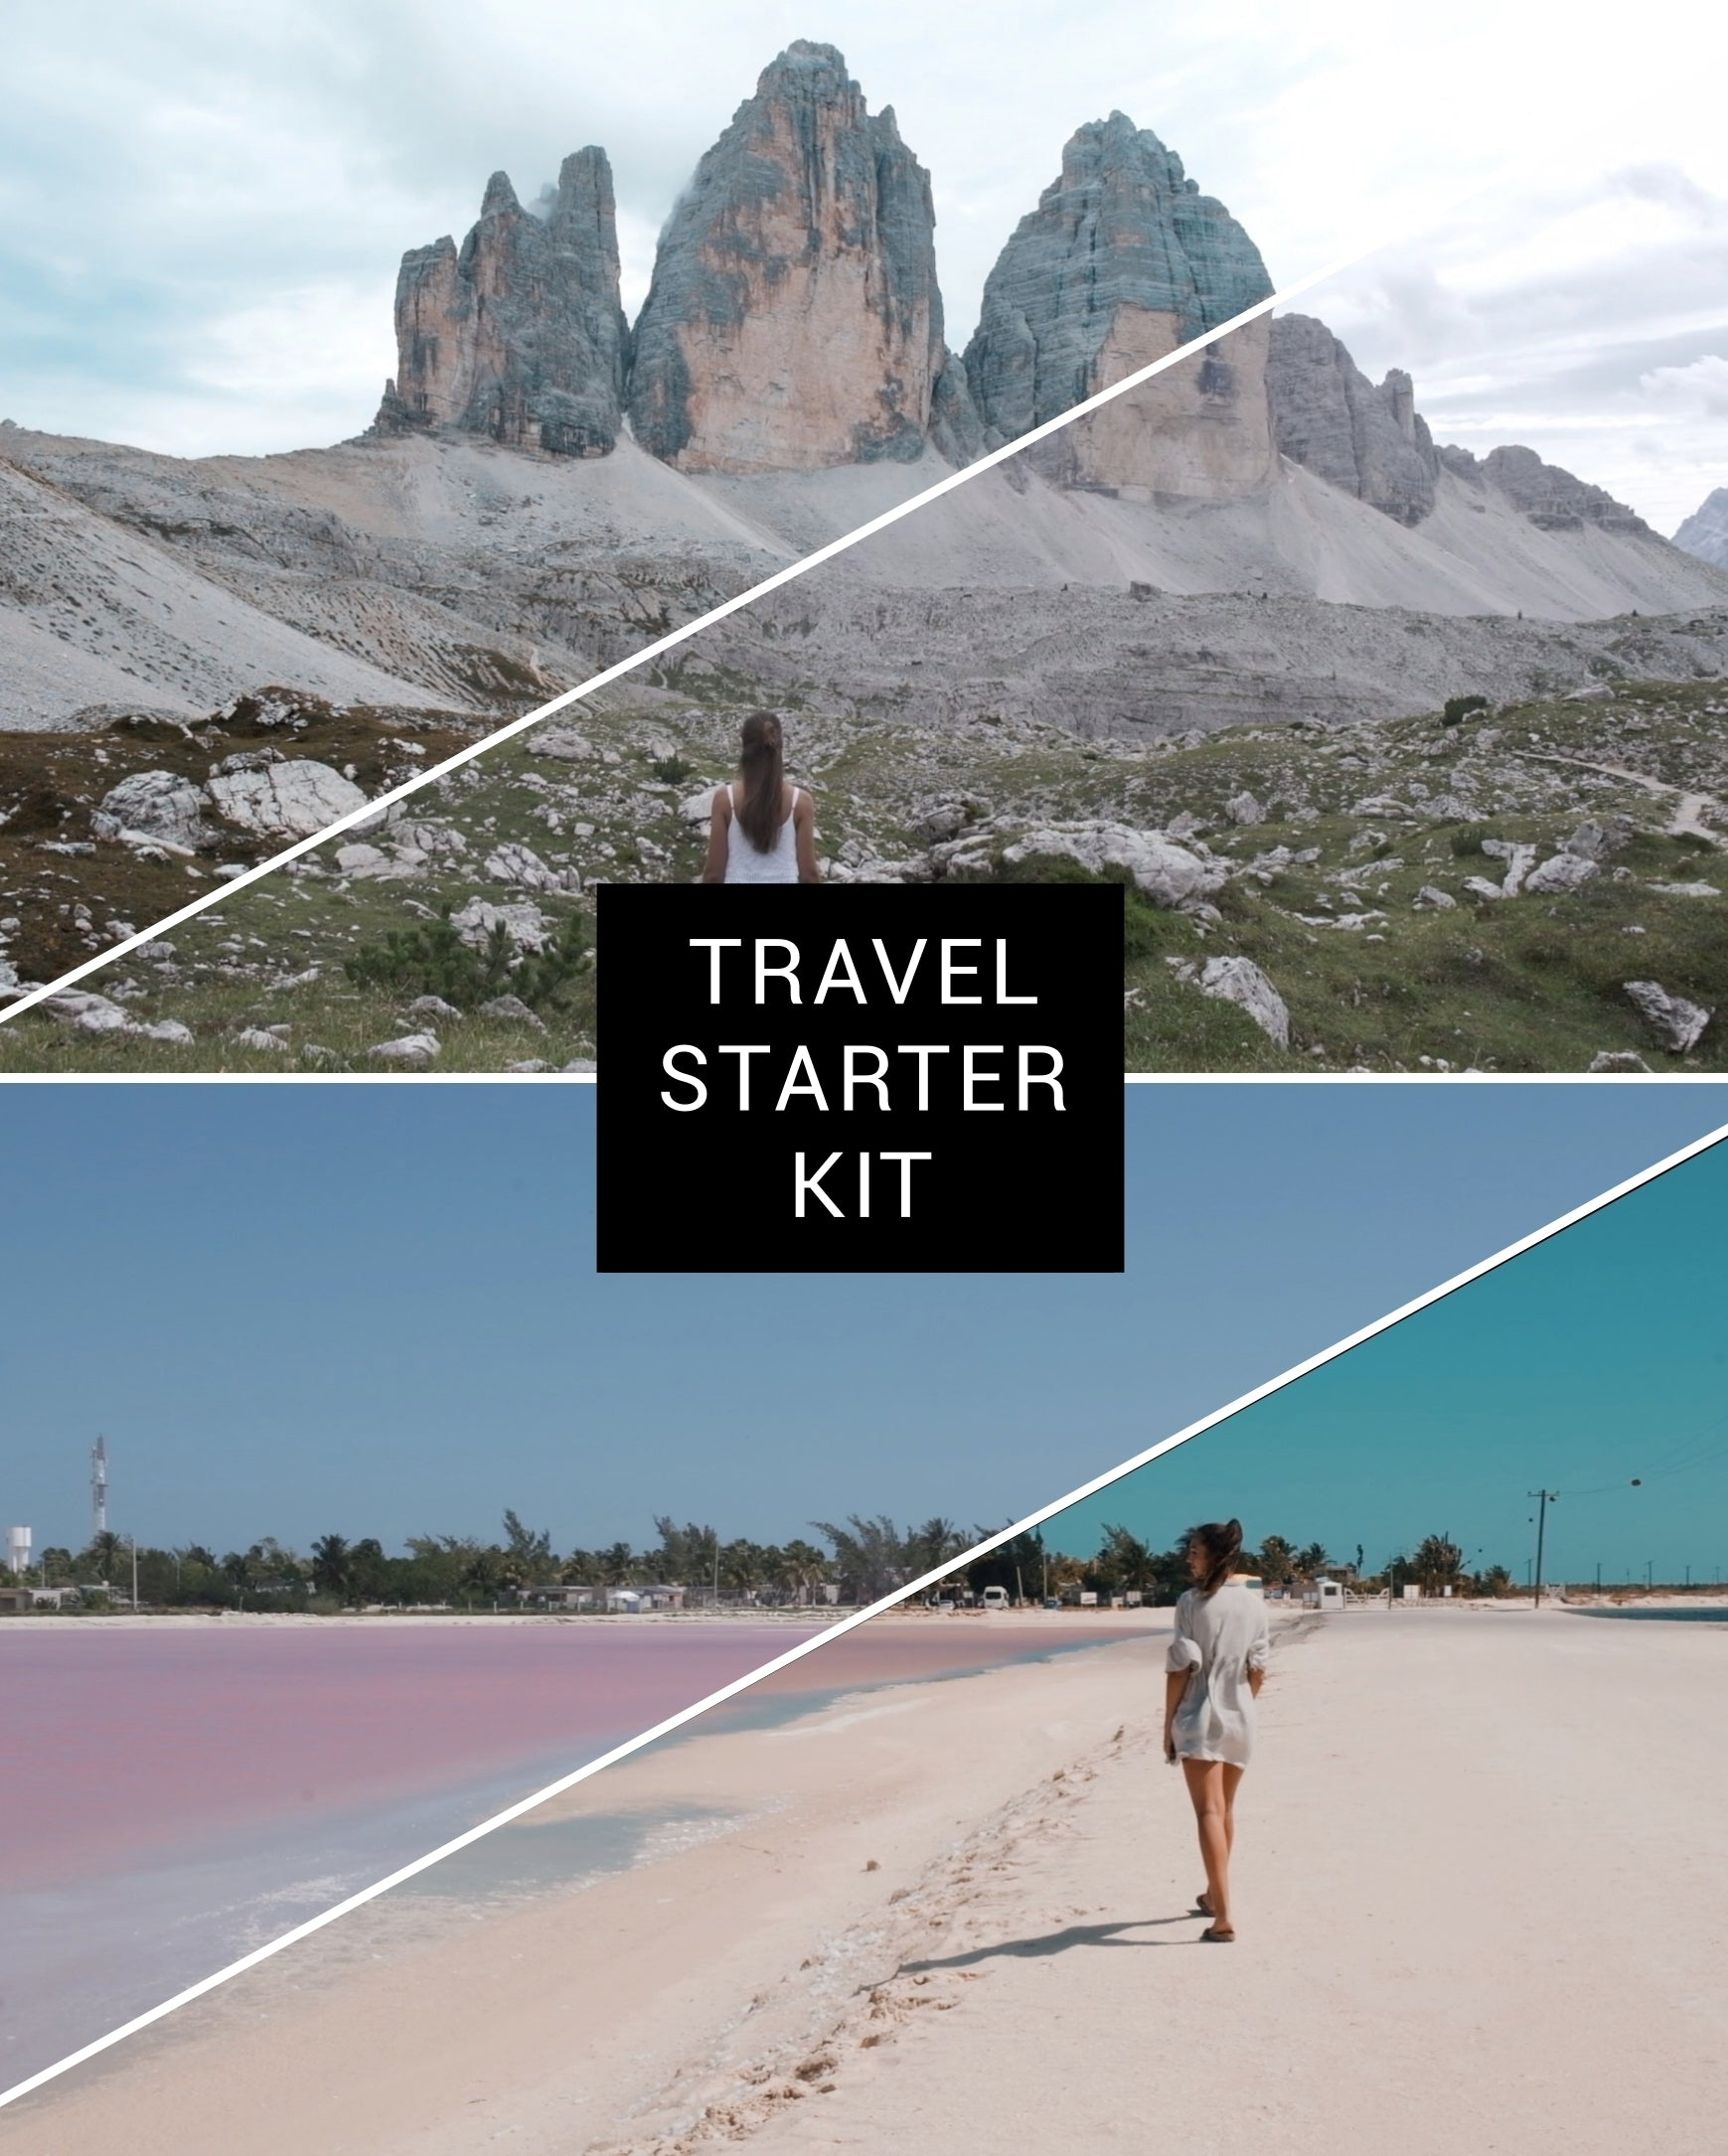 TRAVEL STARTER KIT